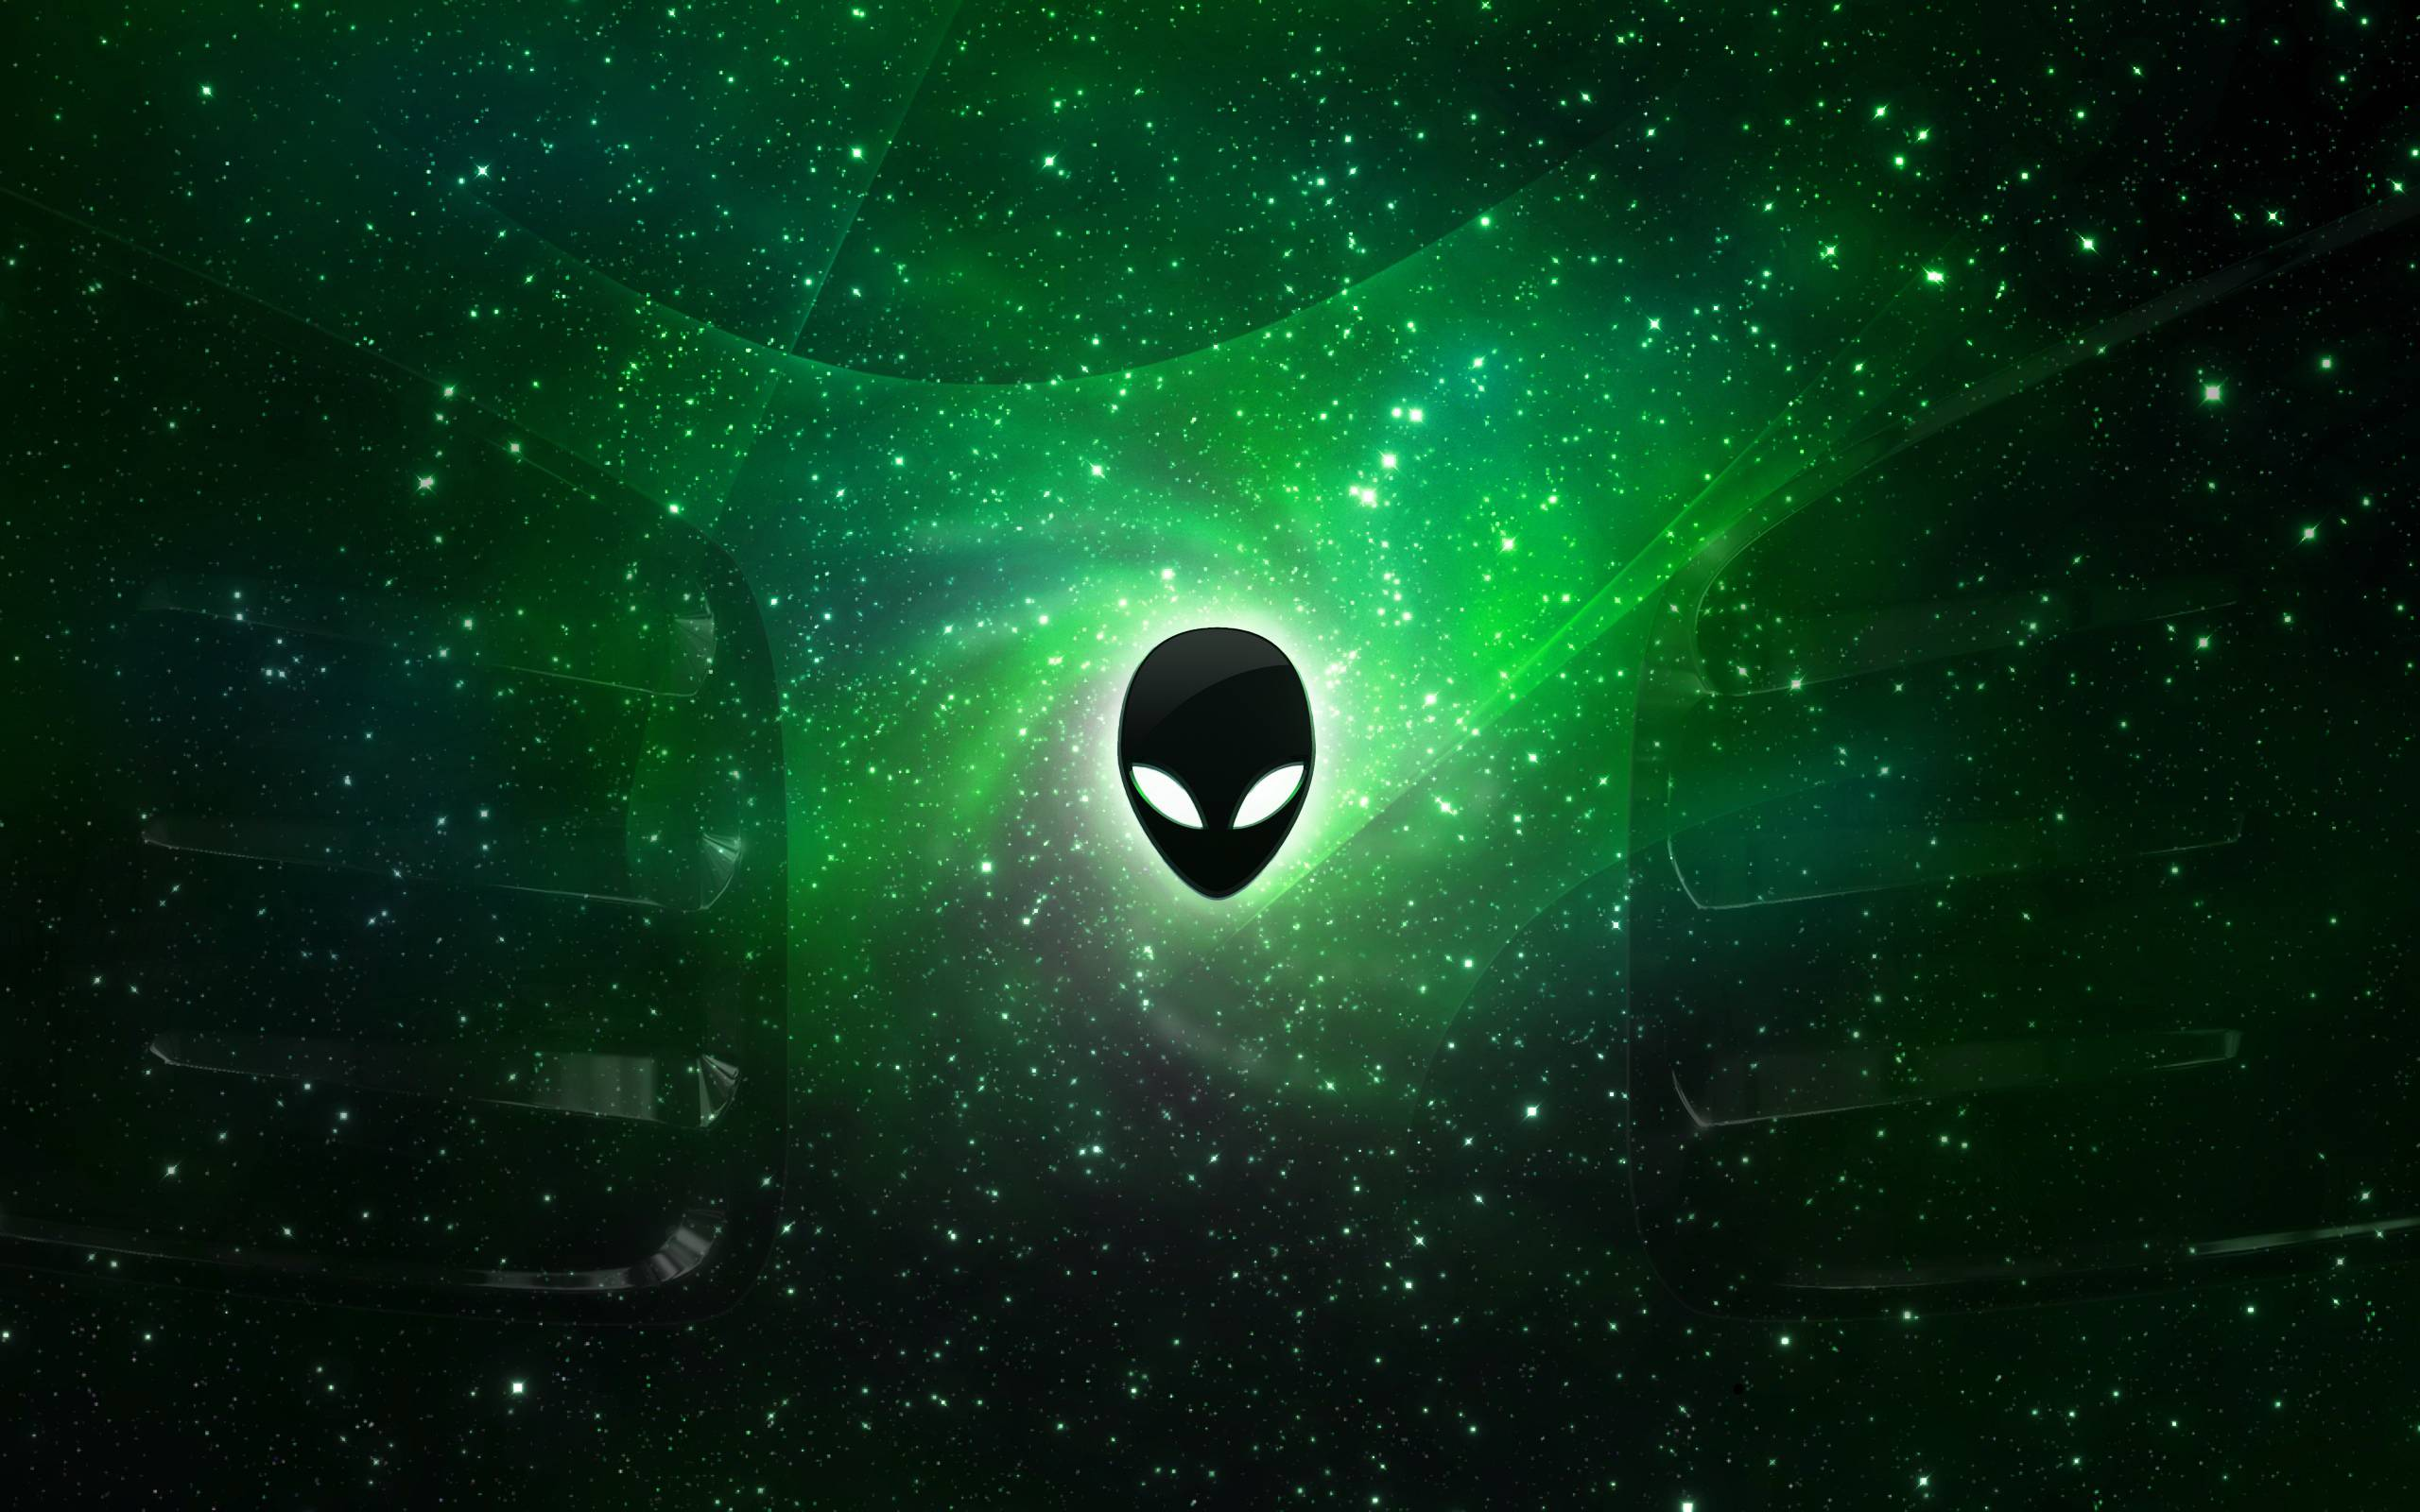 HD Alienware Wallpapers 2560x1600